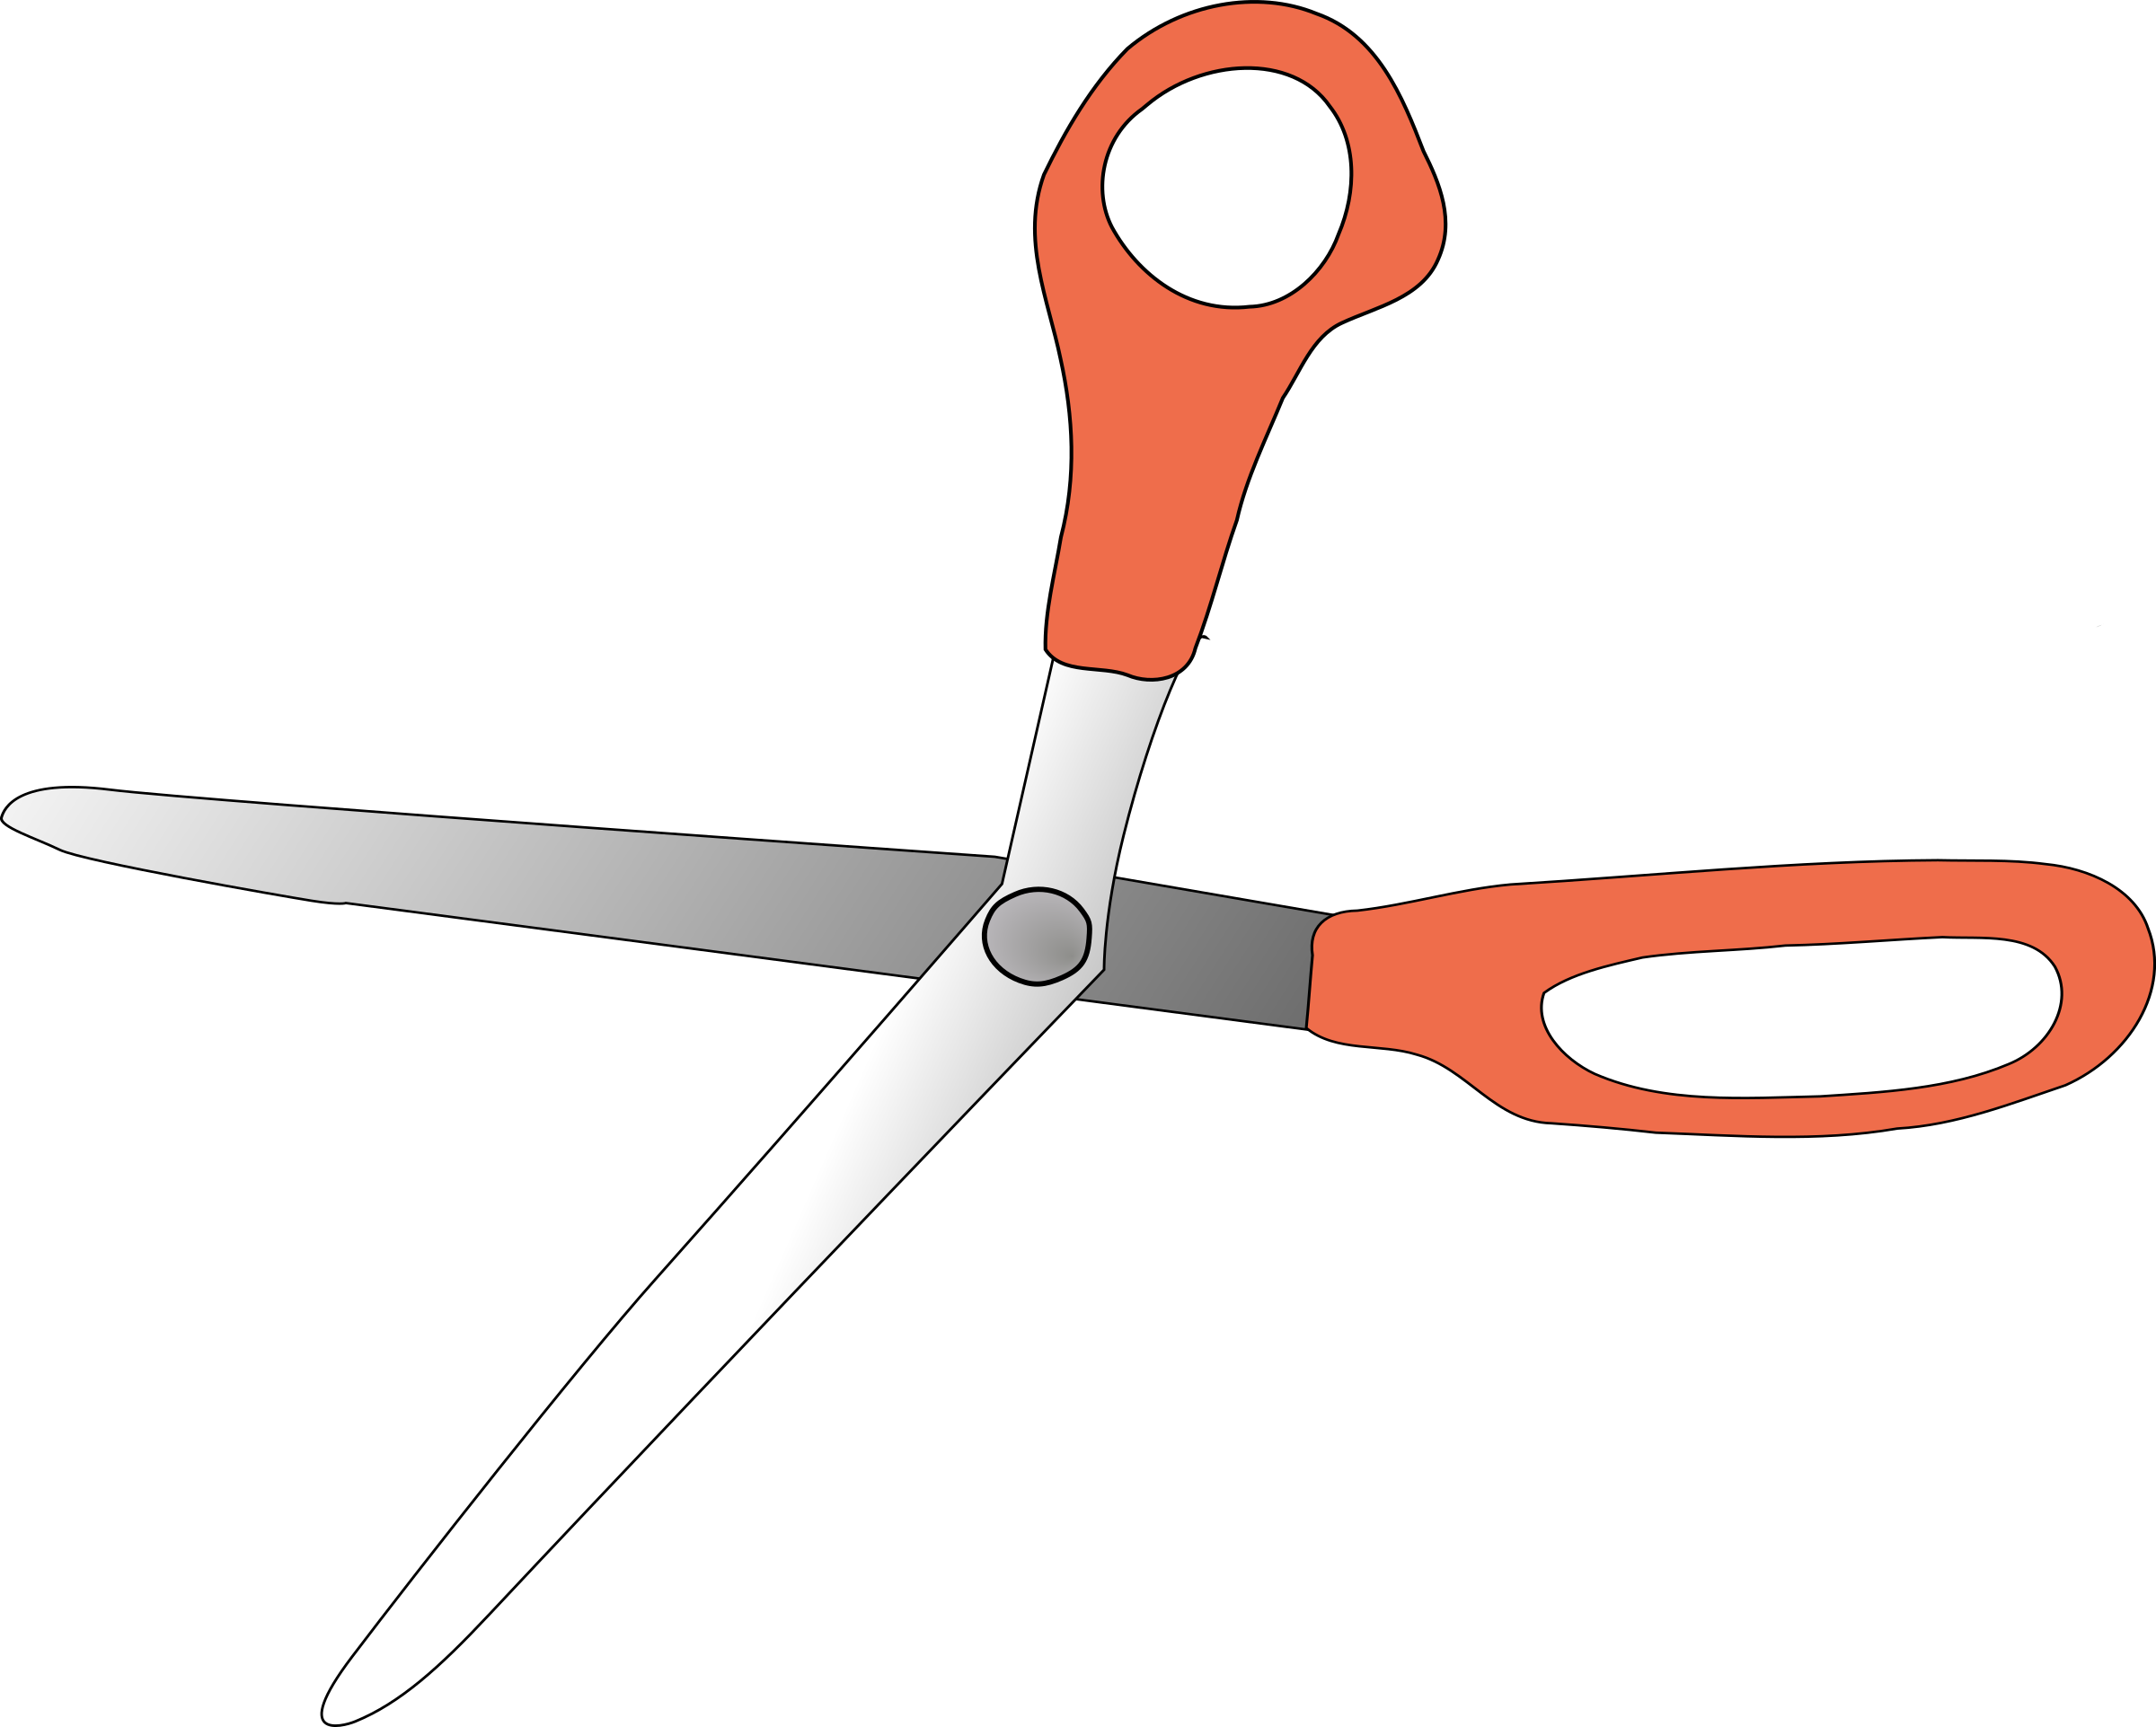 scissors wide open by TheresaKnott